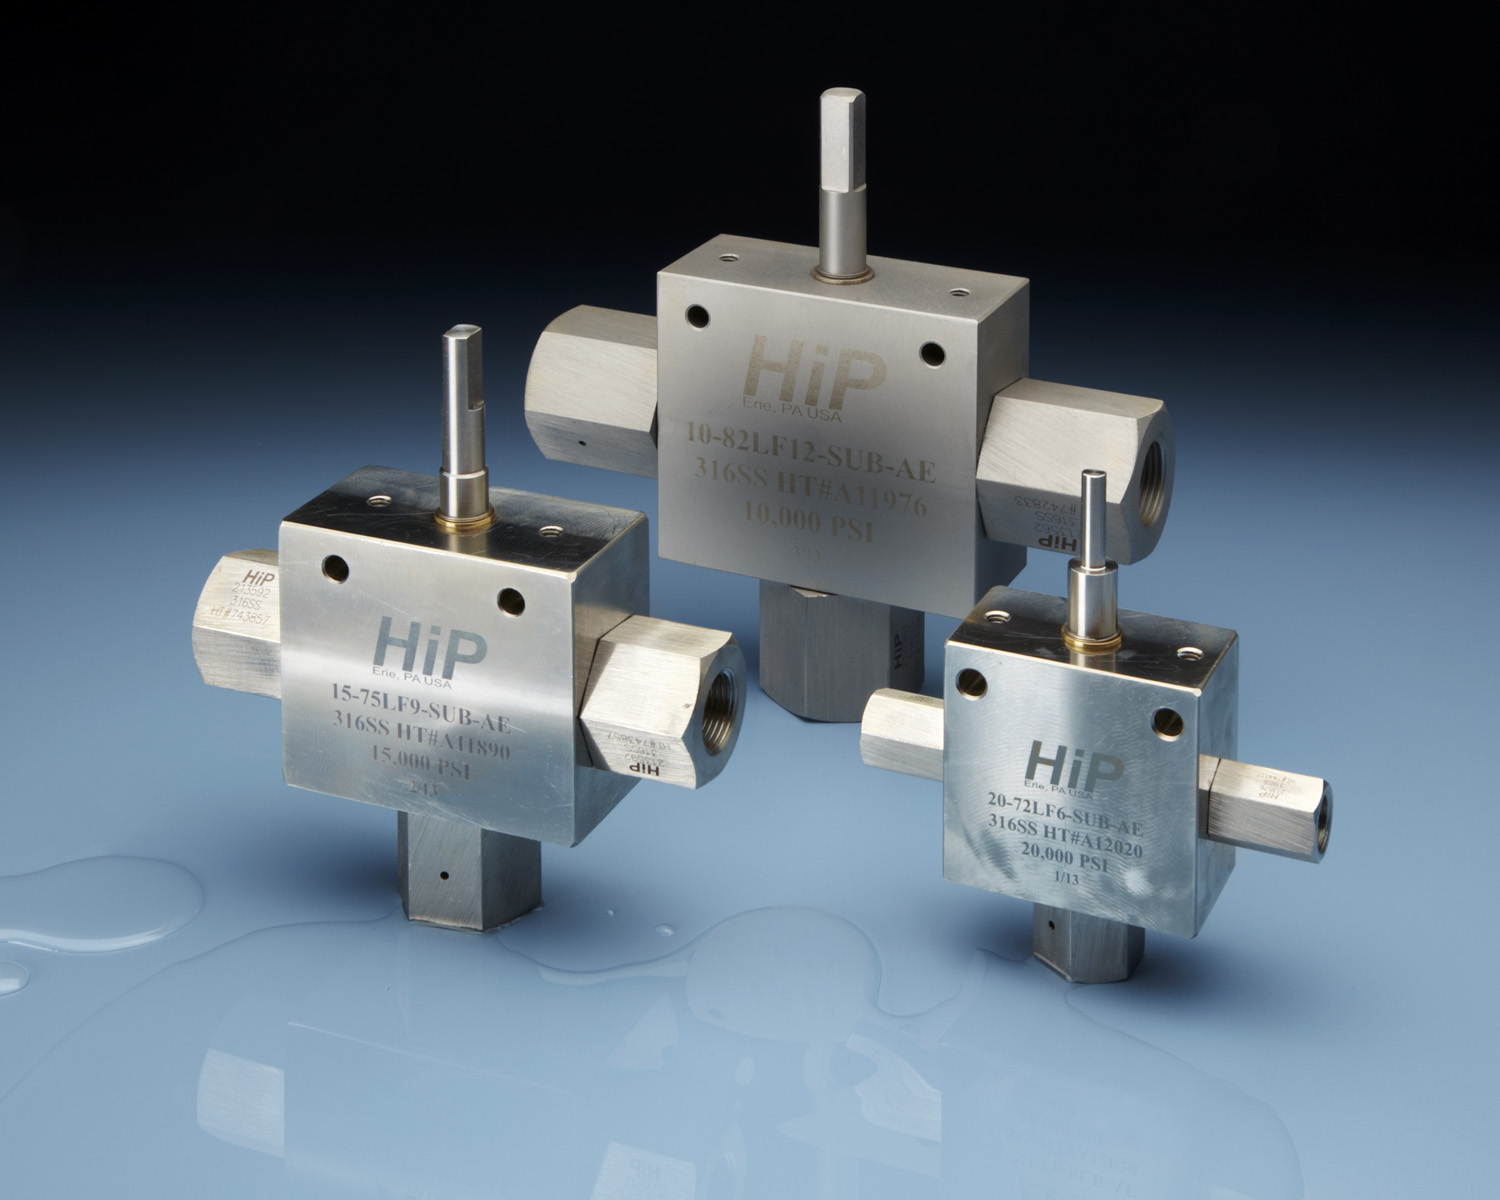 New SubSea Ball Valves from HiP